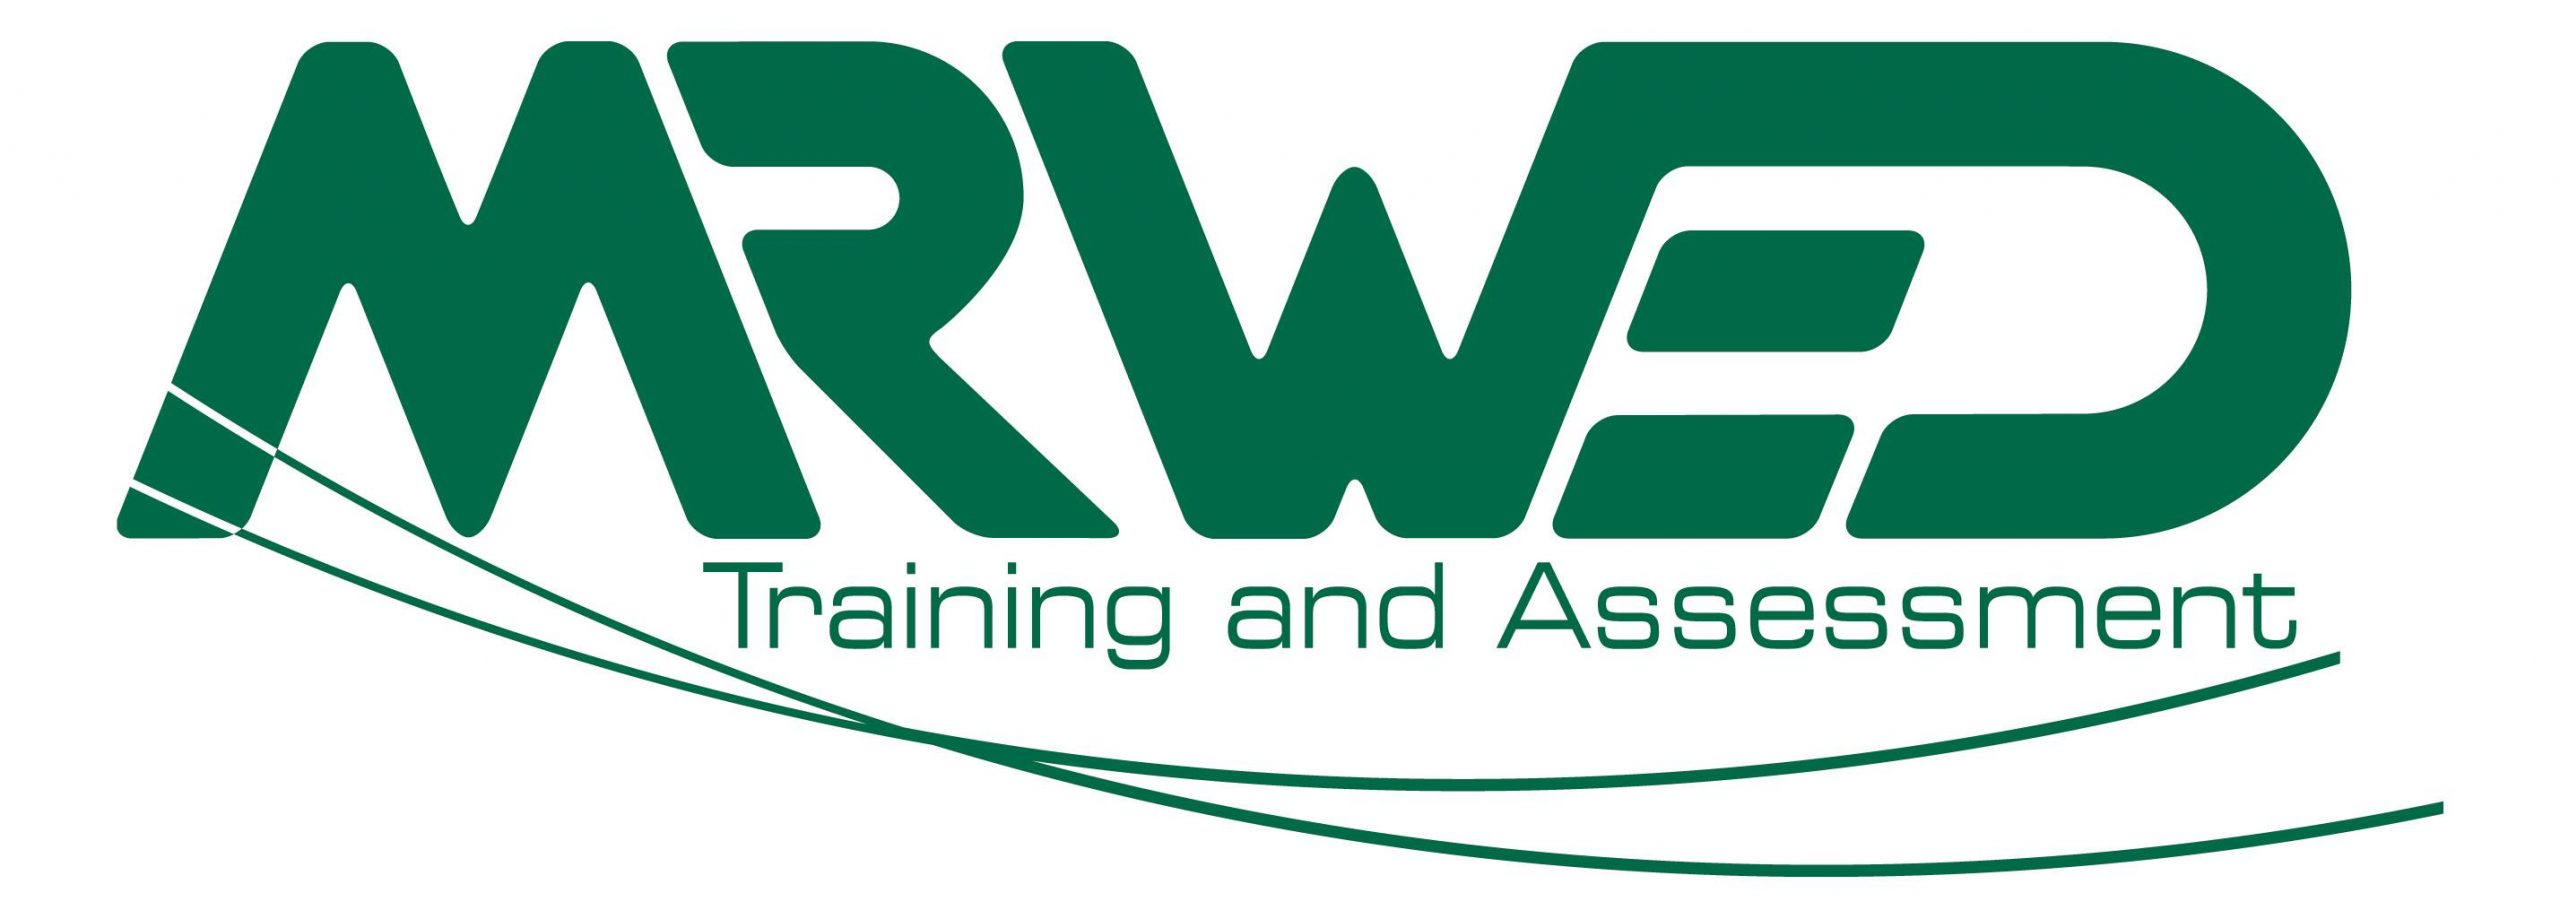 MRWED Training & Assessment